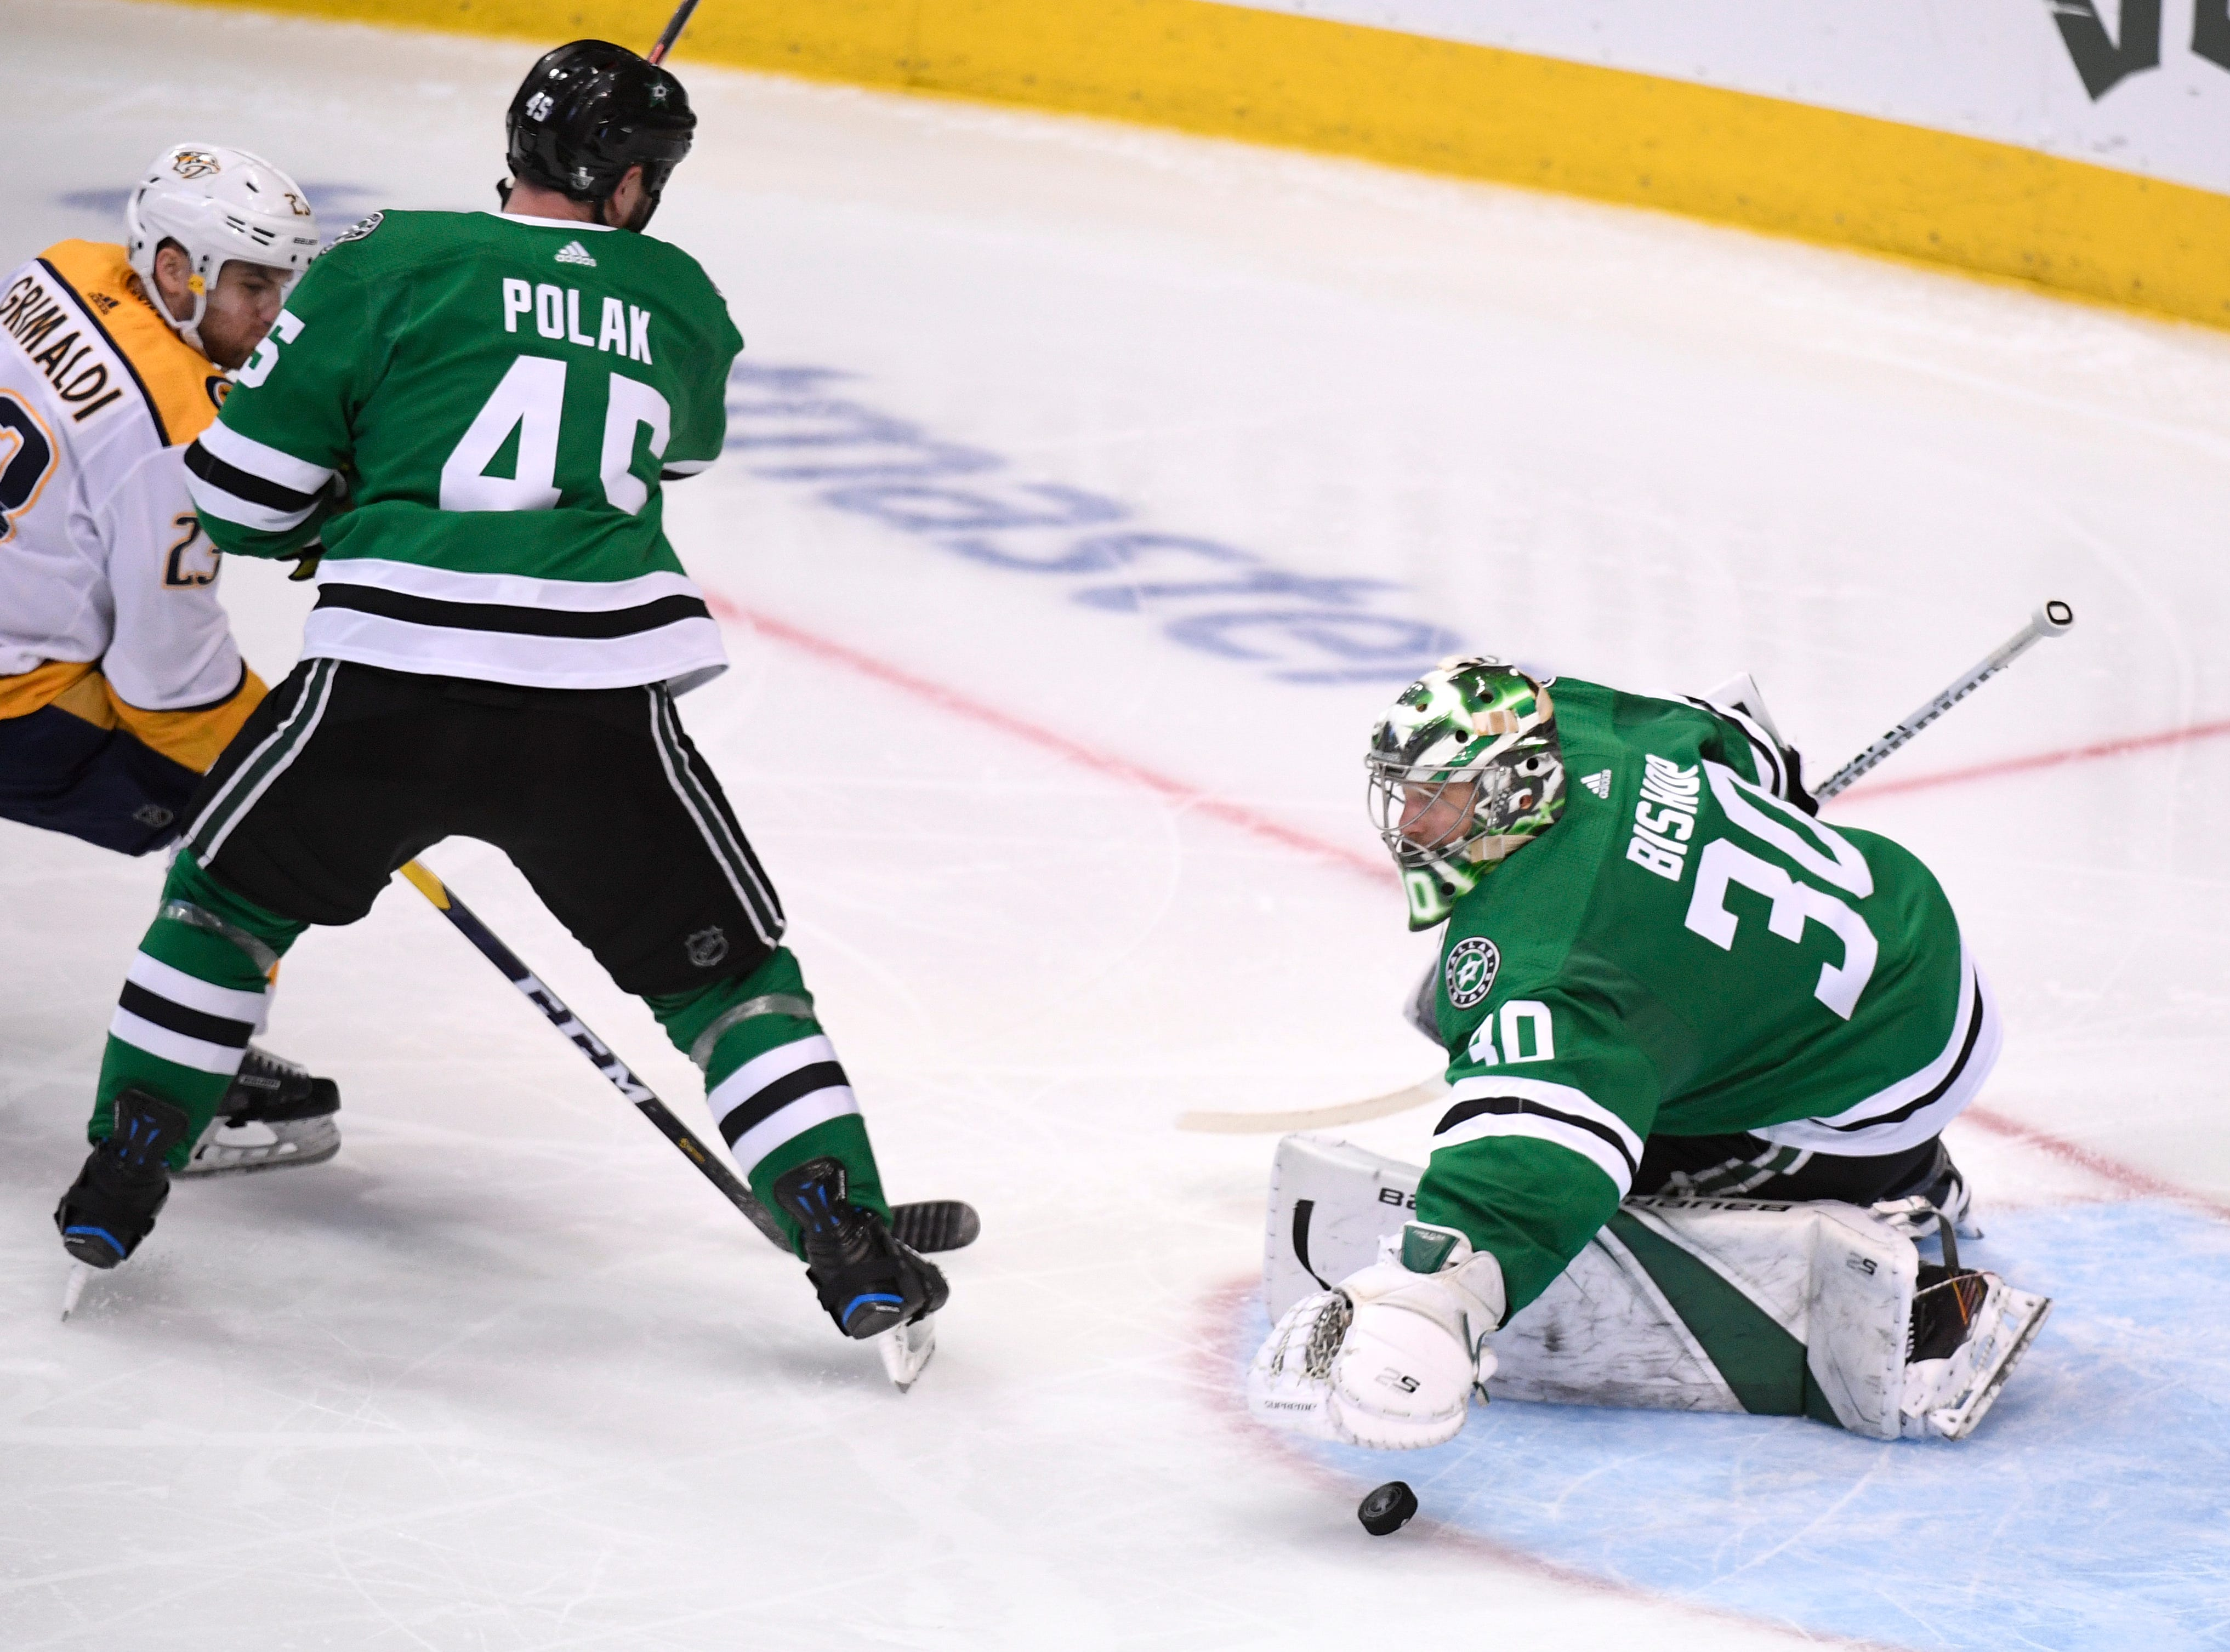 Dallas Stars goaltender Ben Bishop (30) makes a save in front of Nashville Predators center Rocco Grimaldi (23) and Stars defenseman Roman Polak (45) during the third period of the divisional semifinal game at the American Airlines Center in Dallas, Texas, Monday, April 22, 2019.